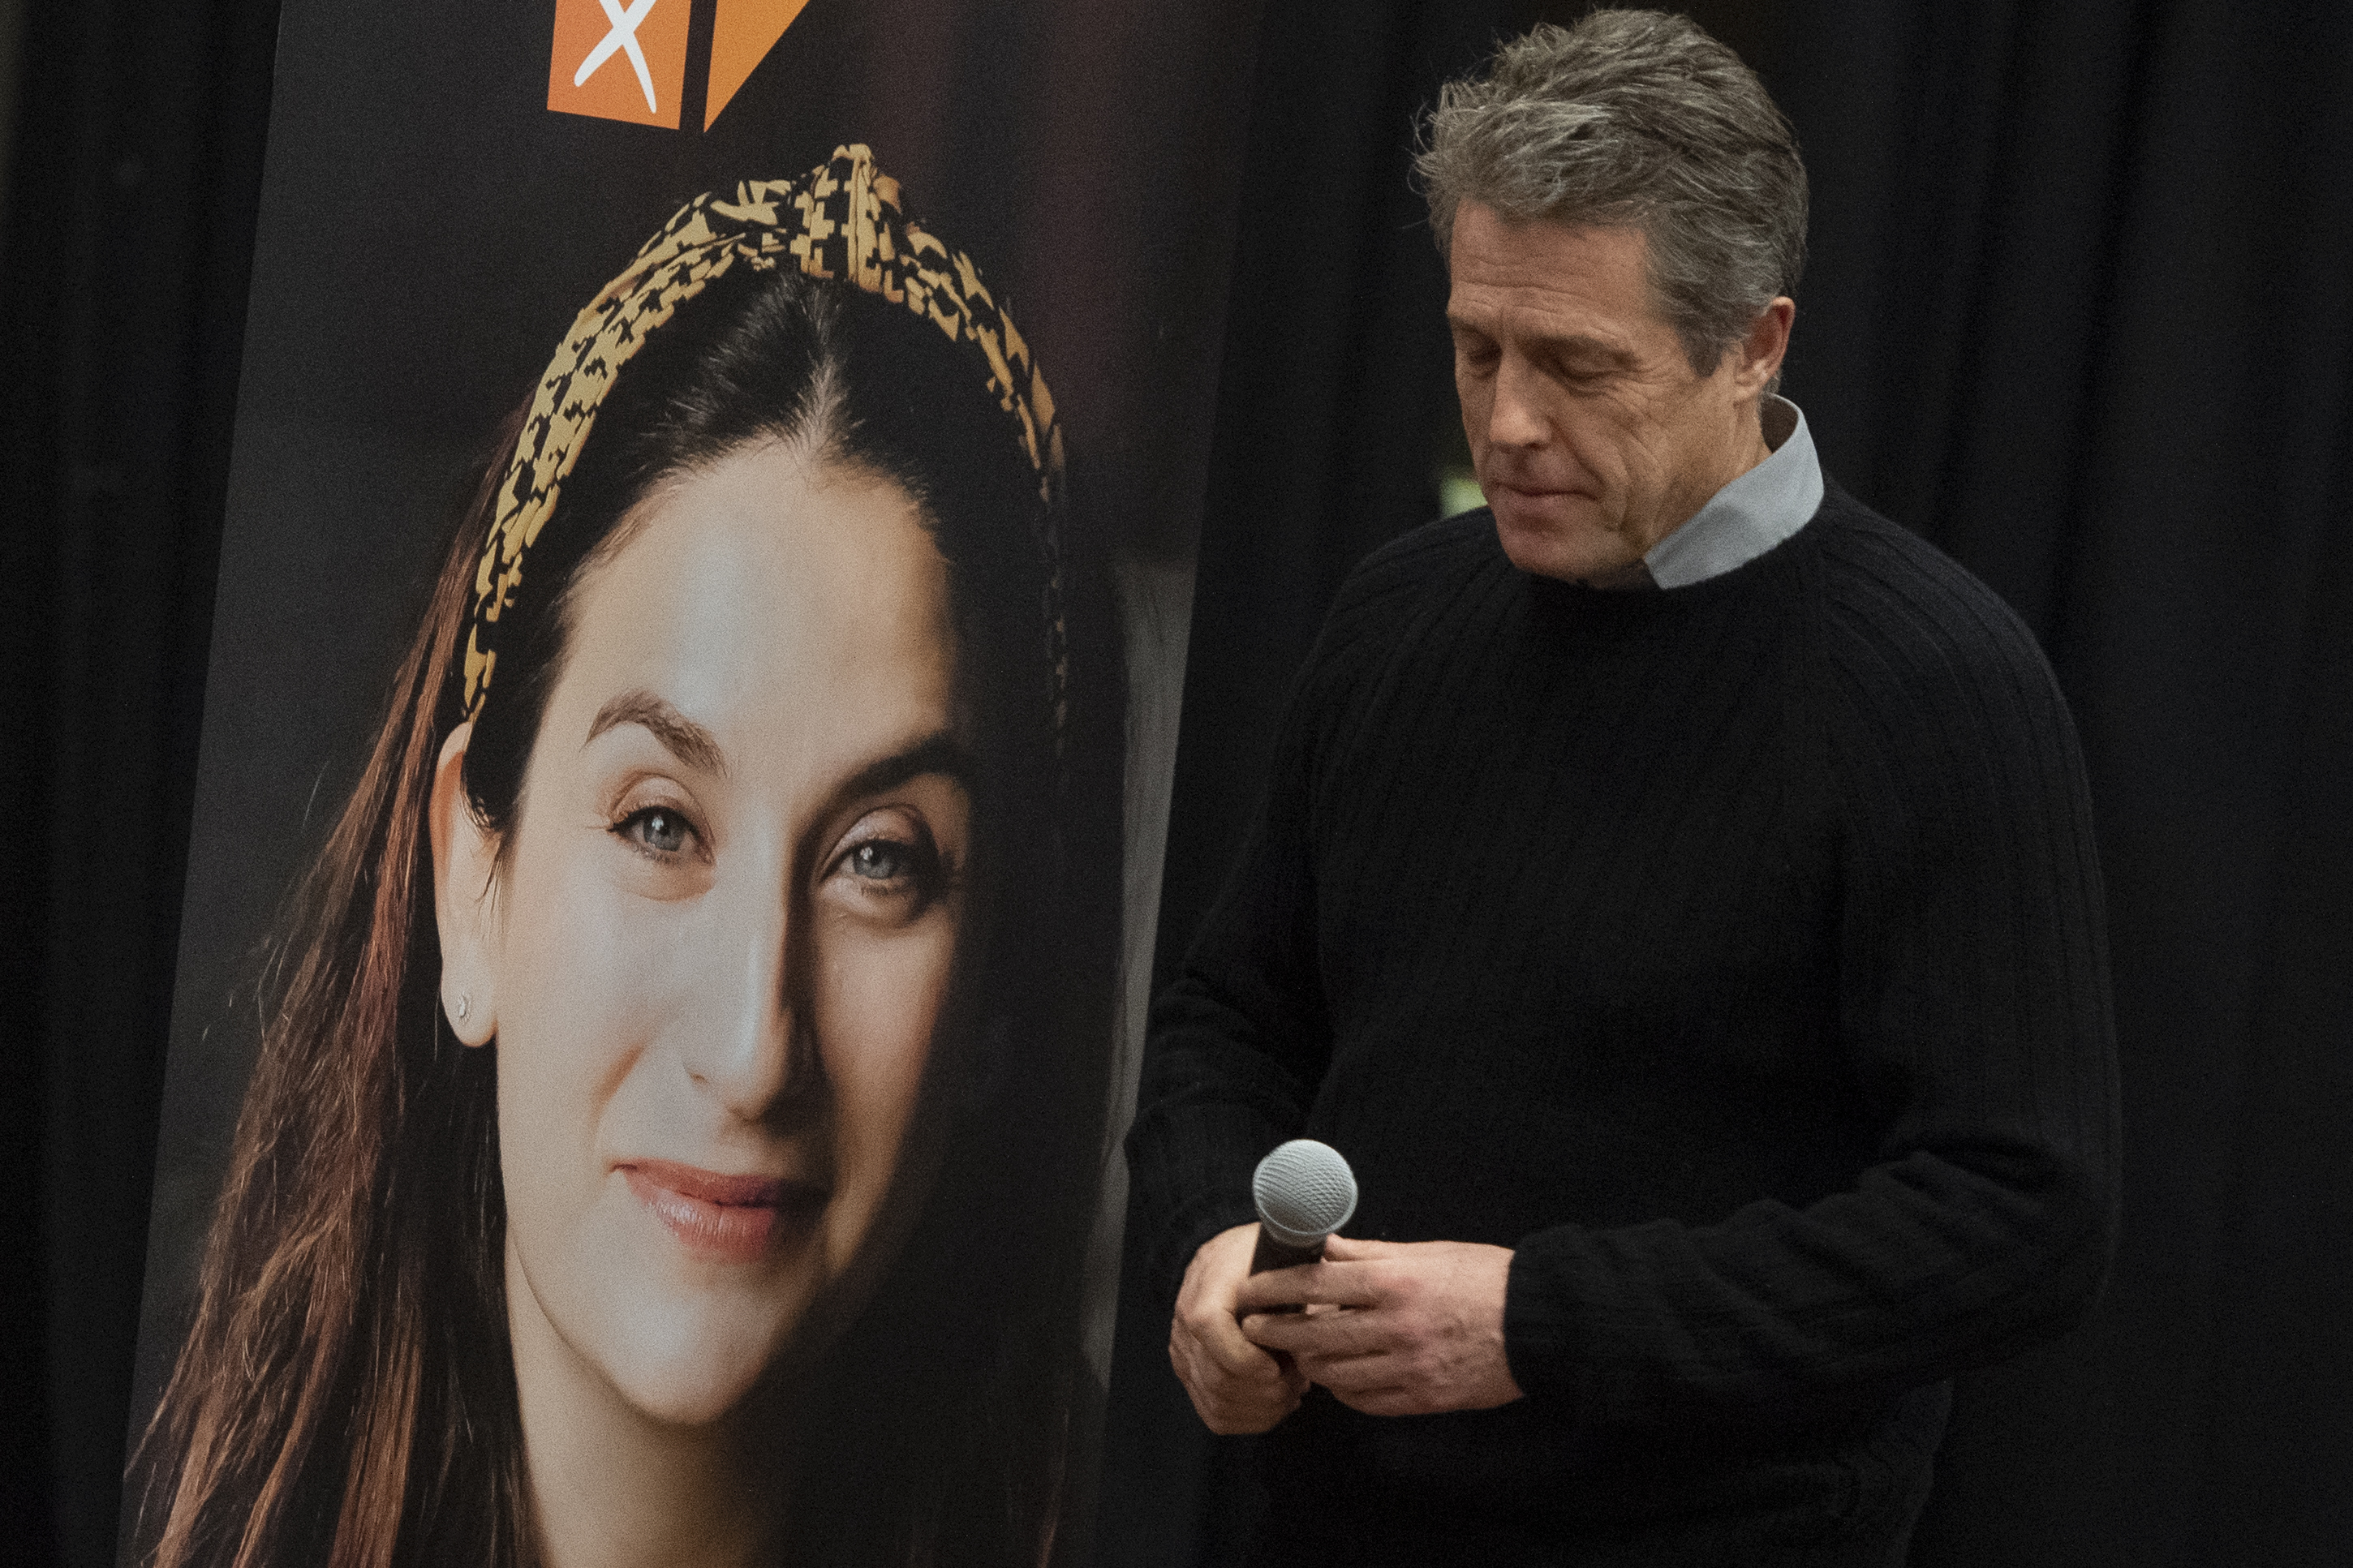 Hugh Grant during a Liberal Democrat's canvassing event in Finchley while on the General Election campaign trail. PA Photo. Picture date: Sunday December 1, 2019. See PA story POLITICS Election. Photo credit should read: David Mirzoeff/PA Wire